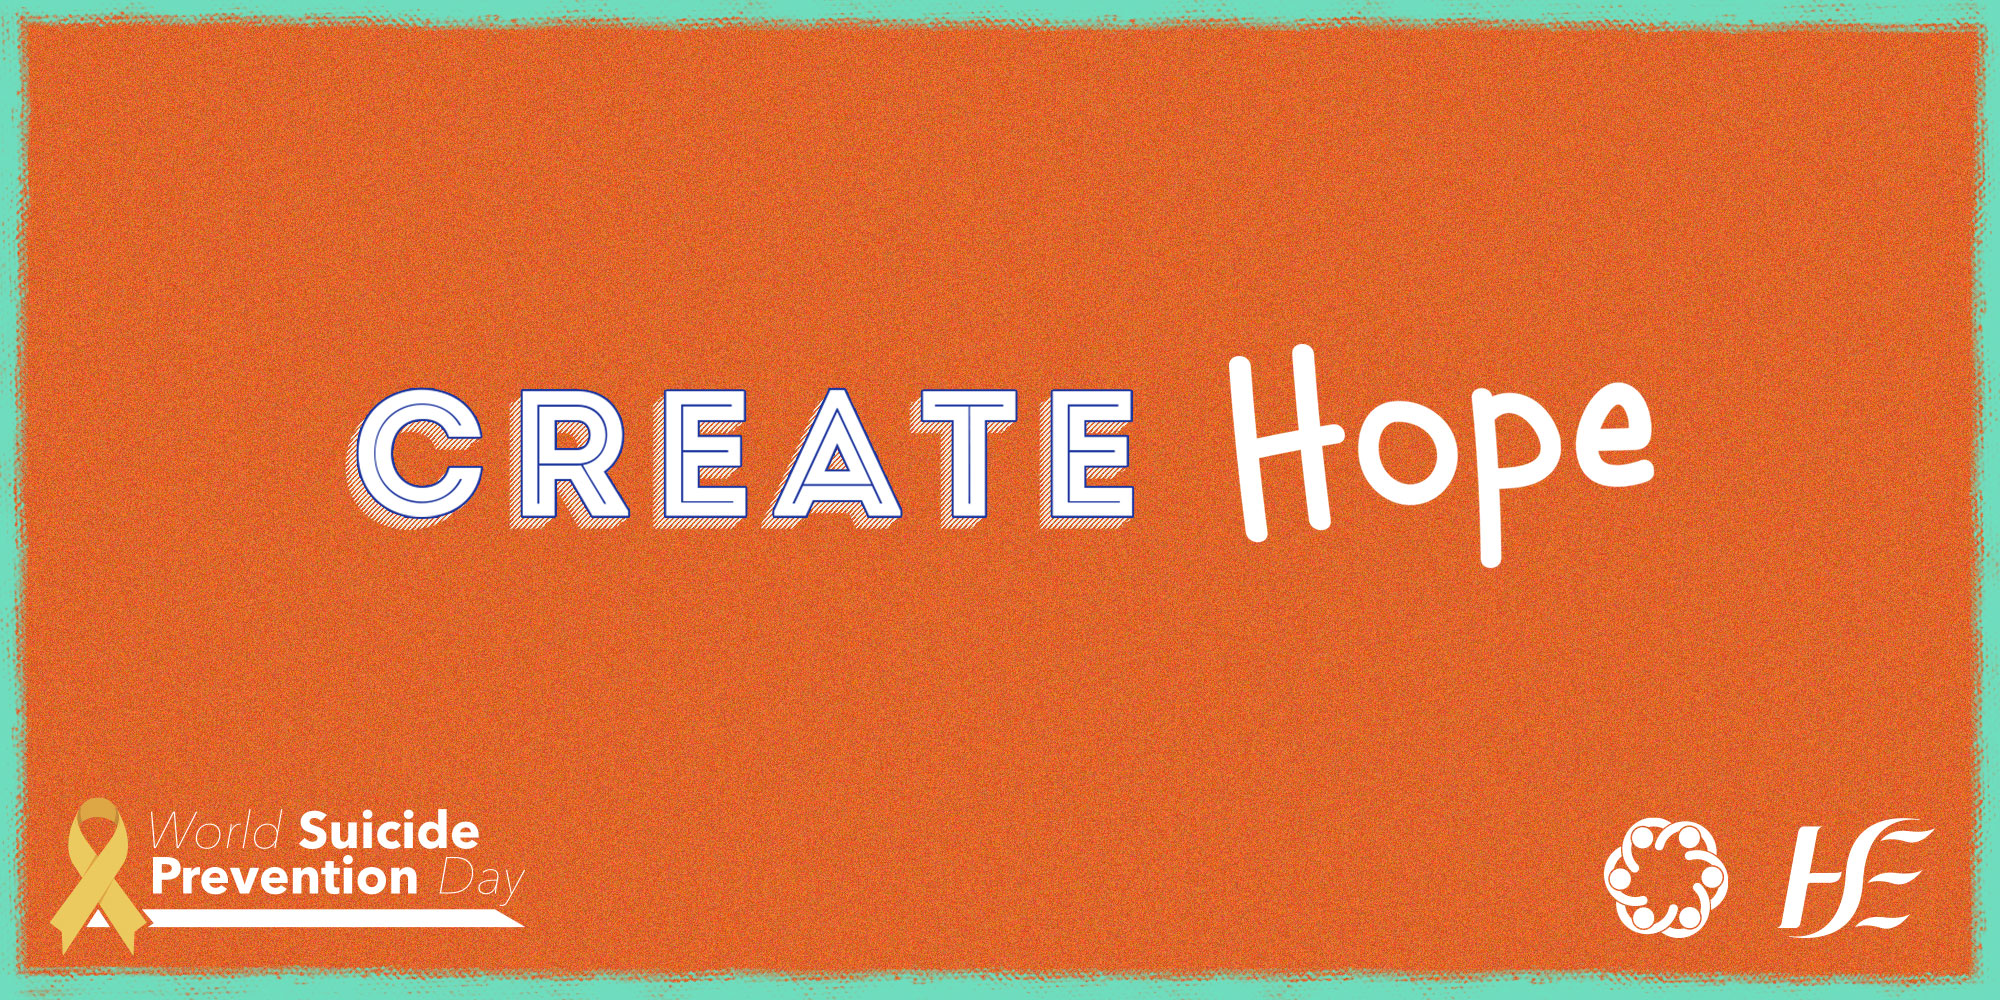 World Suicide Prevention Day 2021 – Creating Hope Through Action